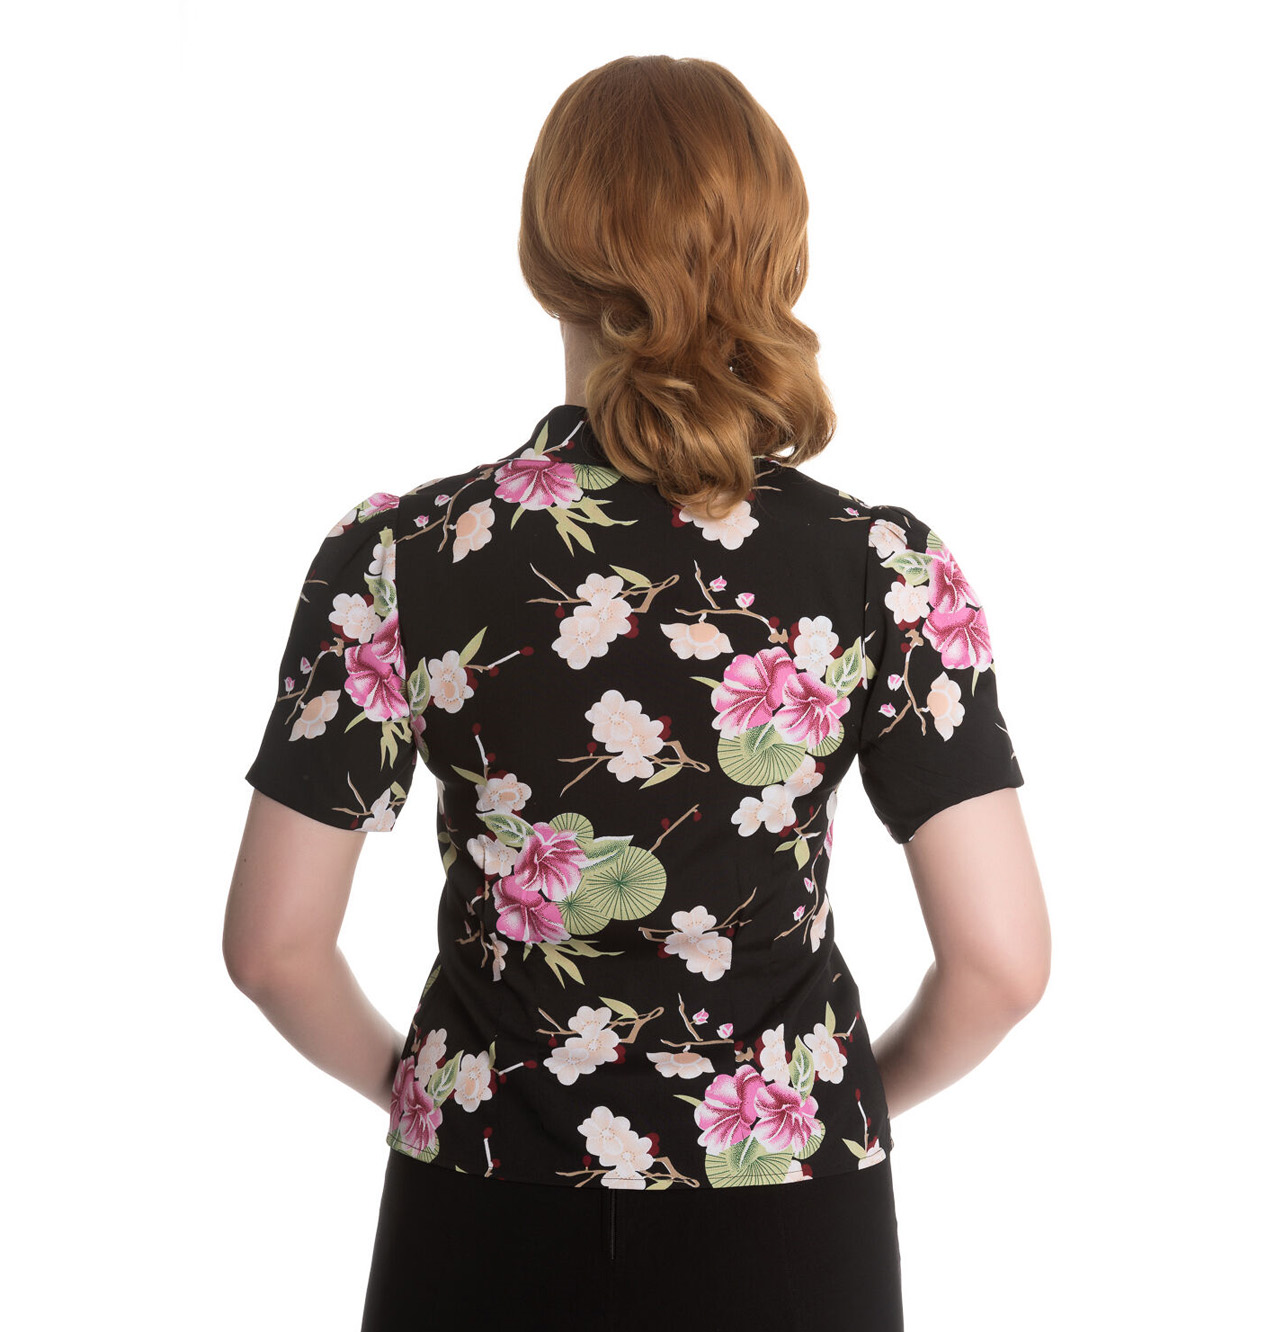 Hell-Bunny-Shirt-Top-40s-50s-Black-FREYA-Pink-Flowers-Floral-Blouse-All-Sizes thumbnail 9